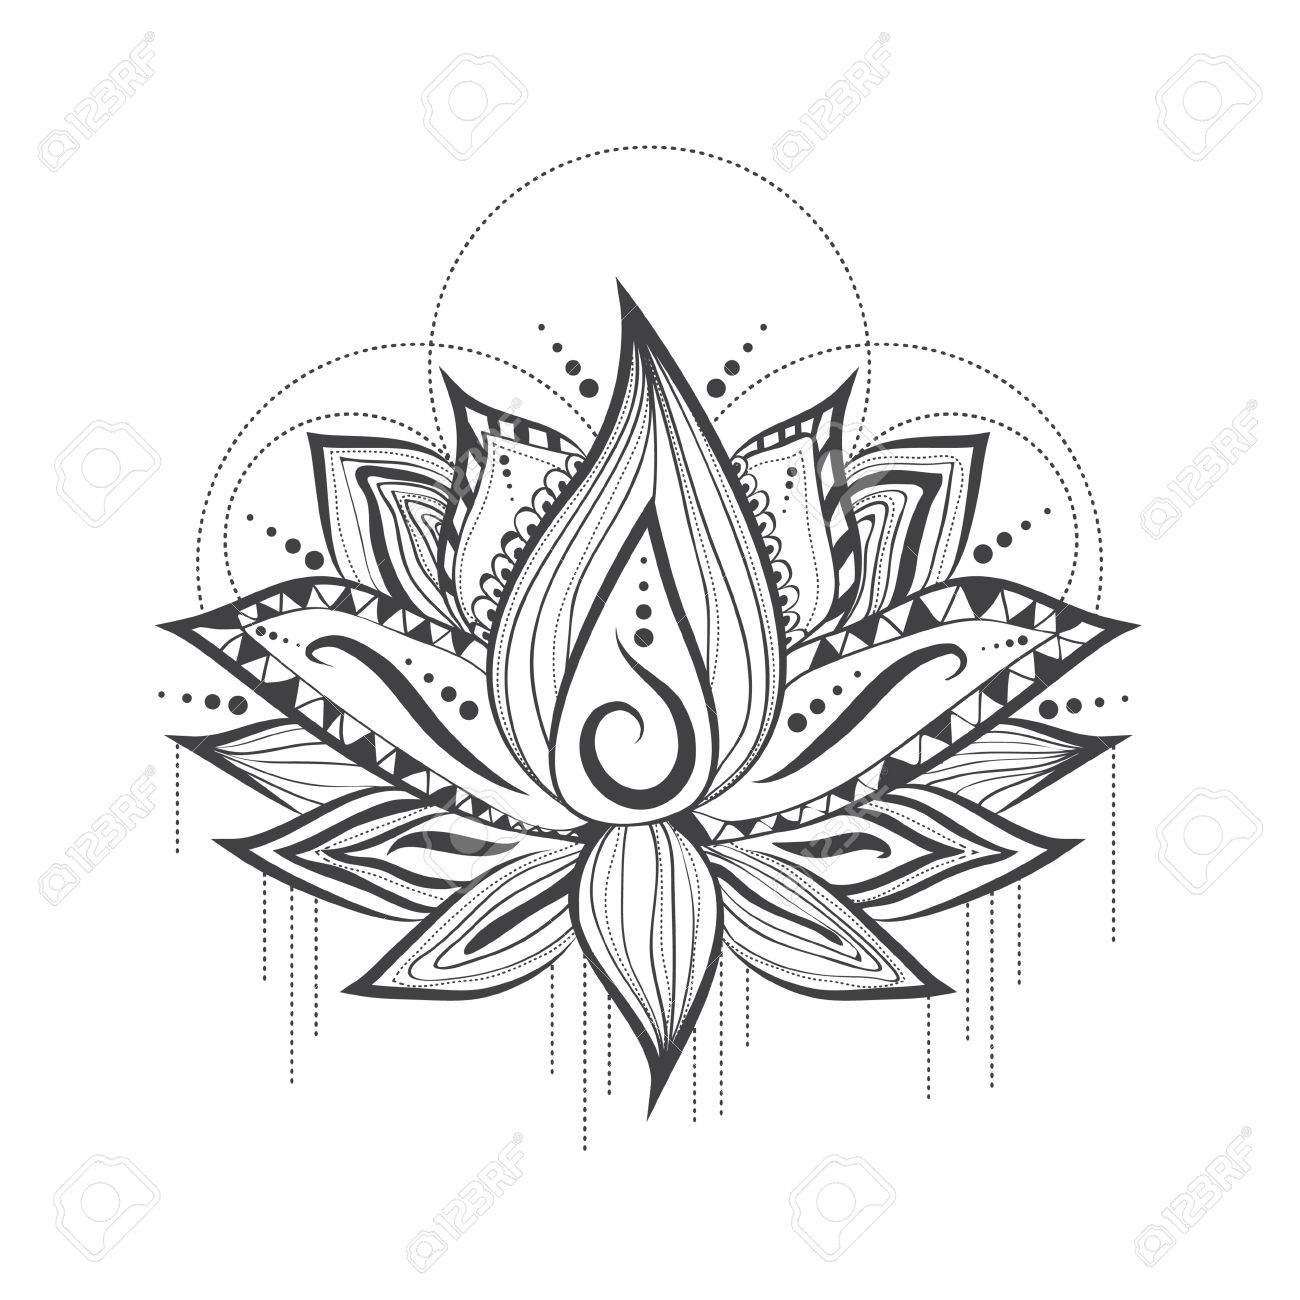 1300x1300 Illustration Of Abstract Tattoo Logo Design Of Lilly Lotus Flower